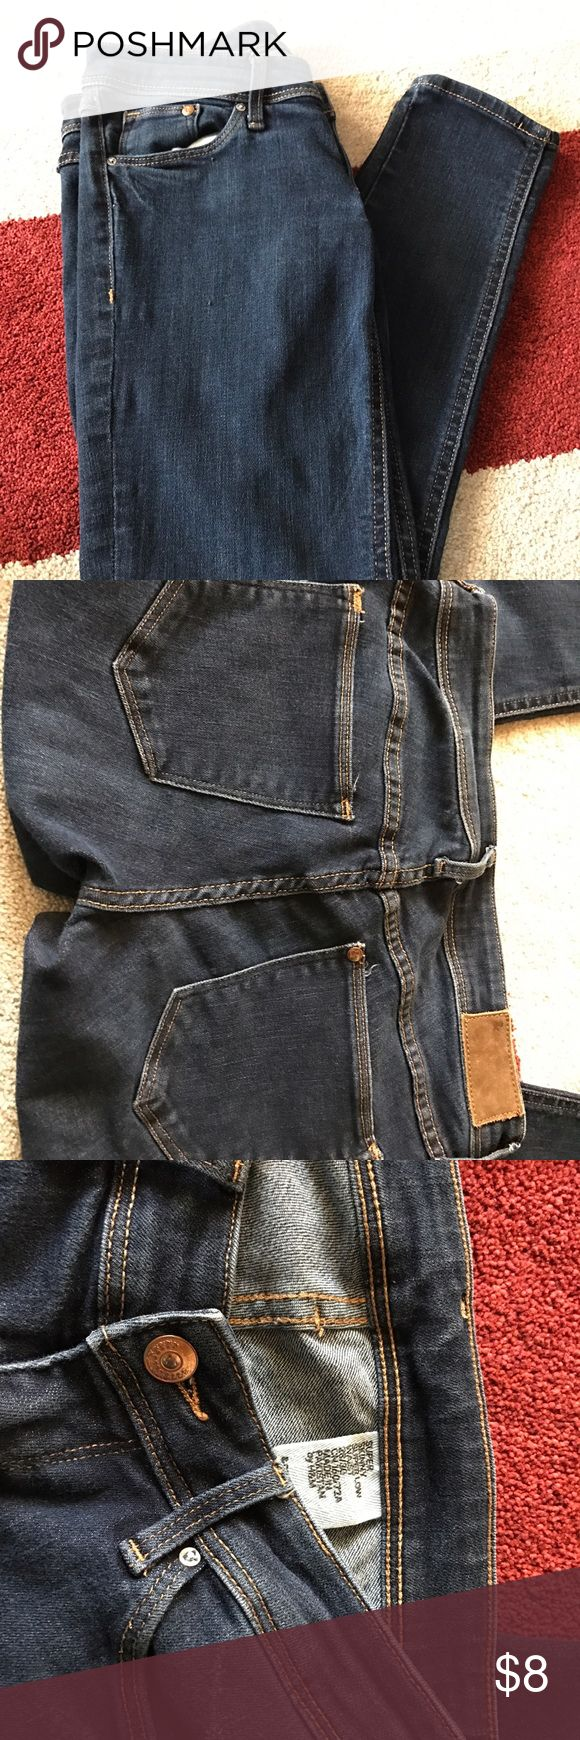 H&M Jeans size 28 H&M jeans super skinny low rise. 28/30 dark wash. No issues. Great condition. No trades. Bundle to save. H&M Jeans Skinny